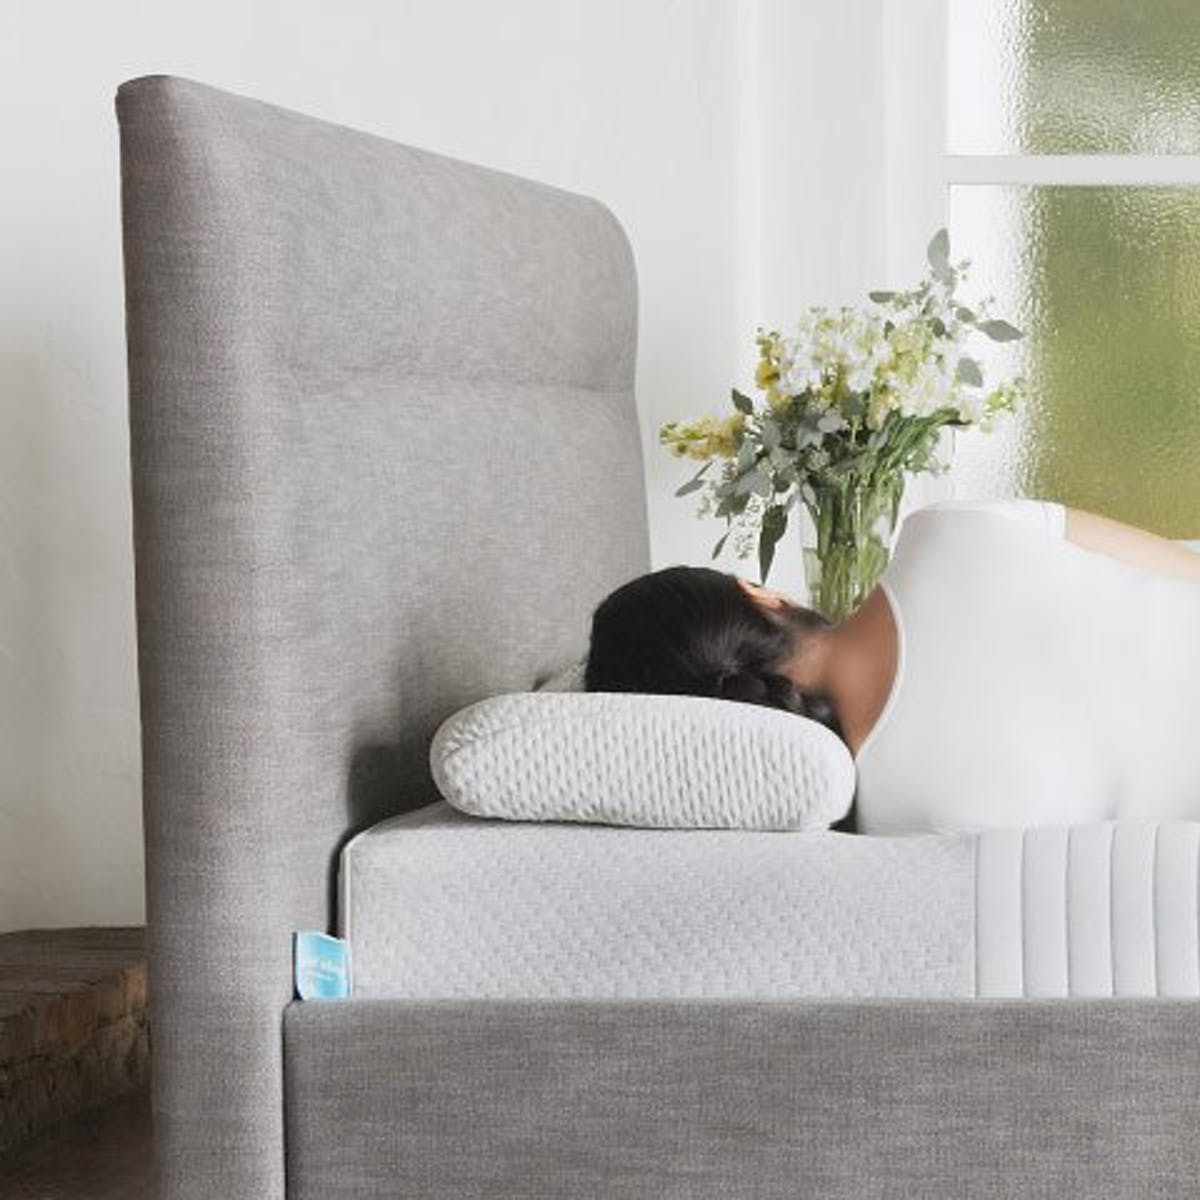 There's Finally a Mattress Made to End Back Pain